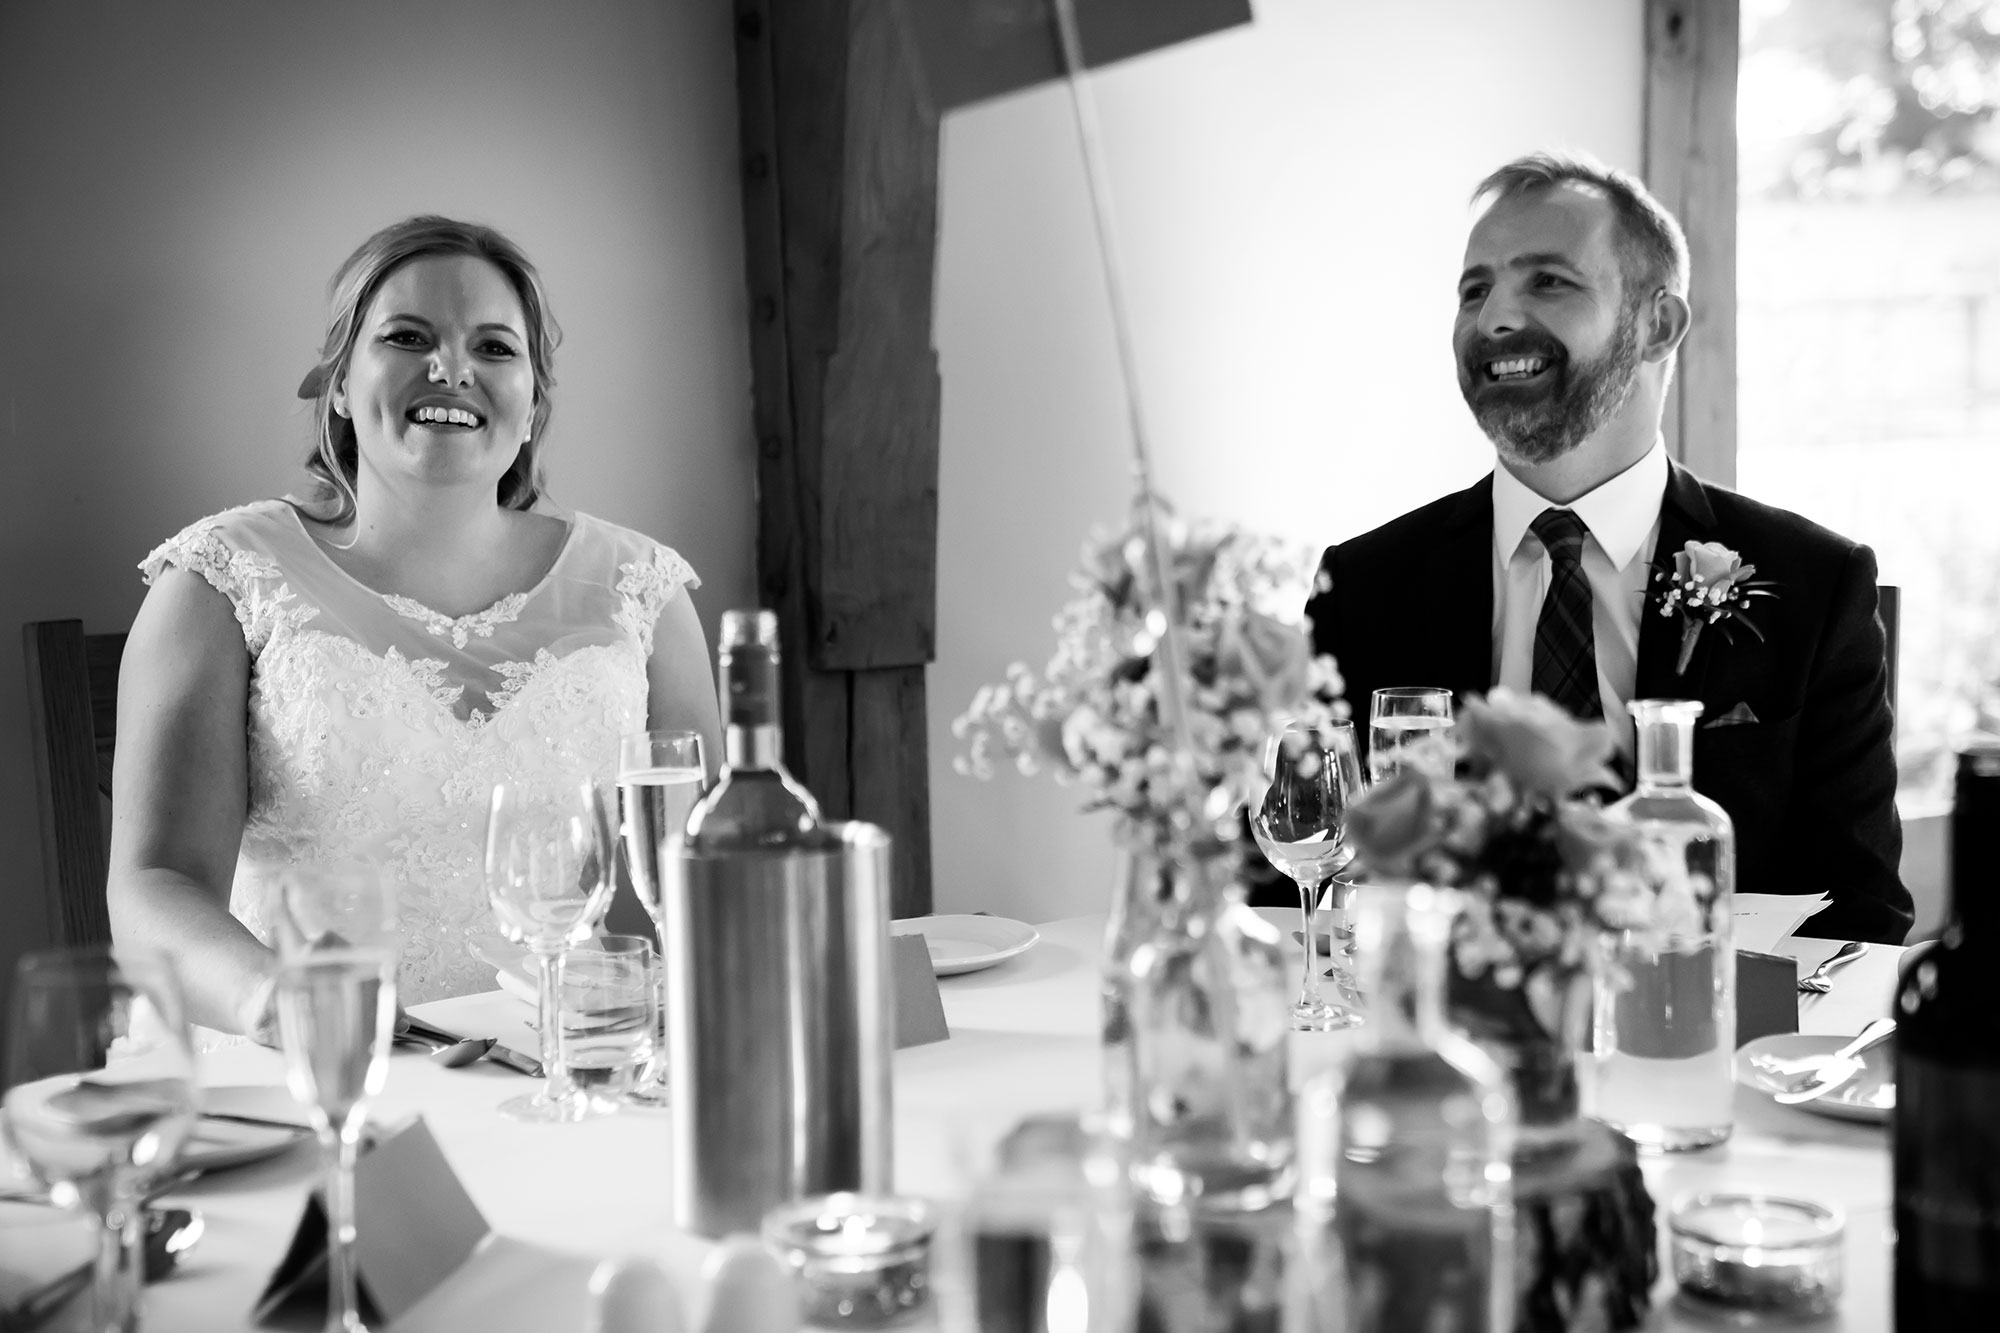 Jane & Conor sitting at their rustic top table during the wedding breakfast at Tower Hill Barns